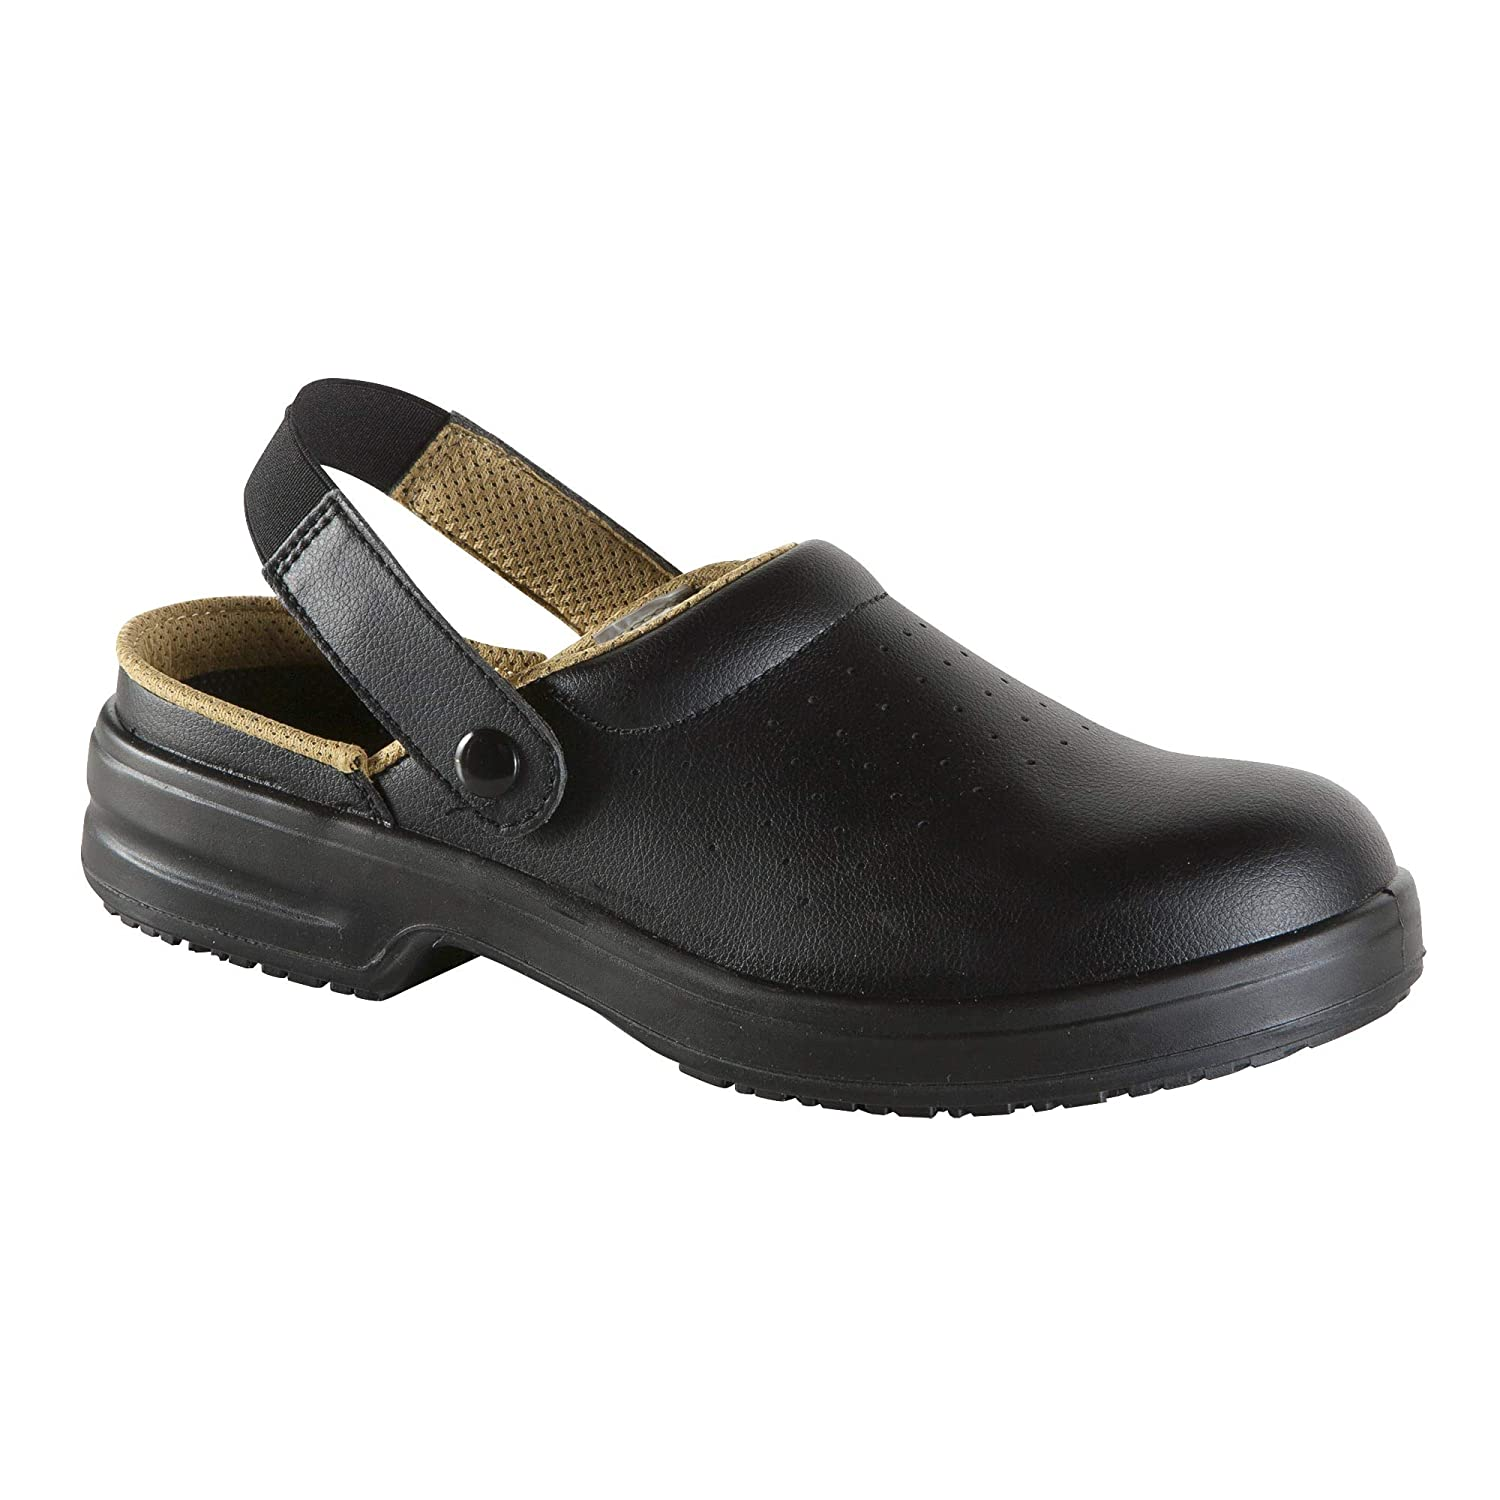 2c07694132c ESD Safety Footwear Unisex Black Safety Clogs With Steel Toe